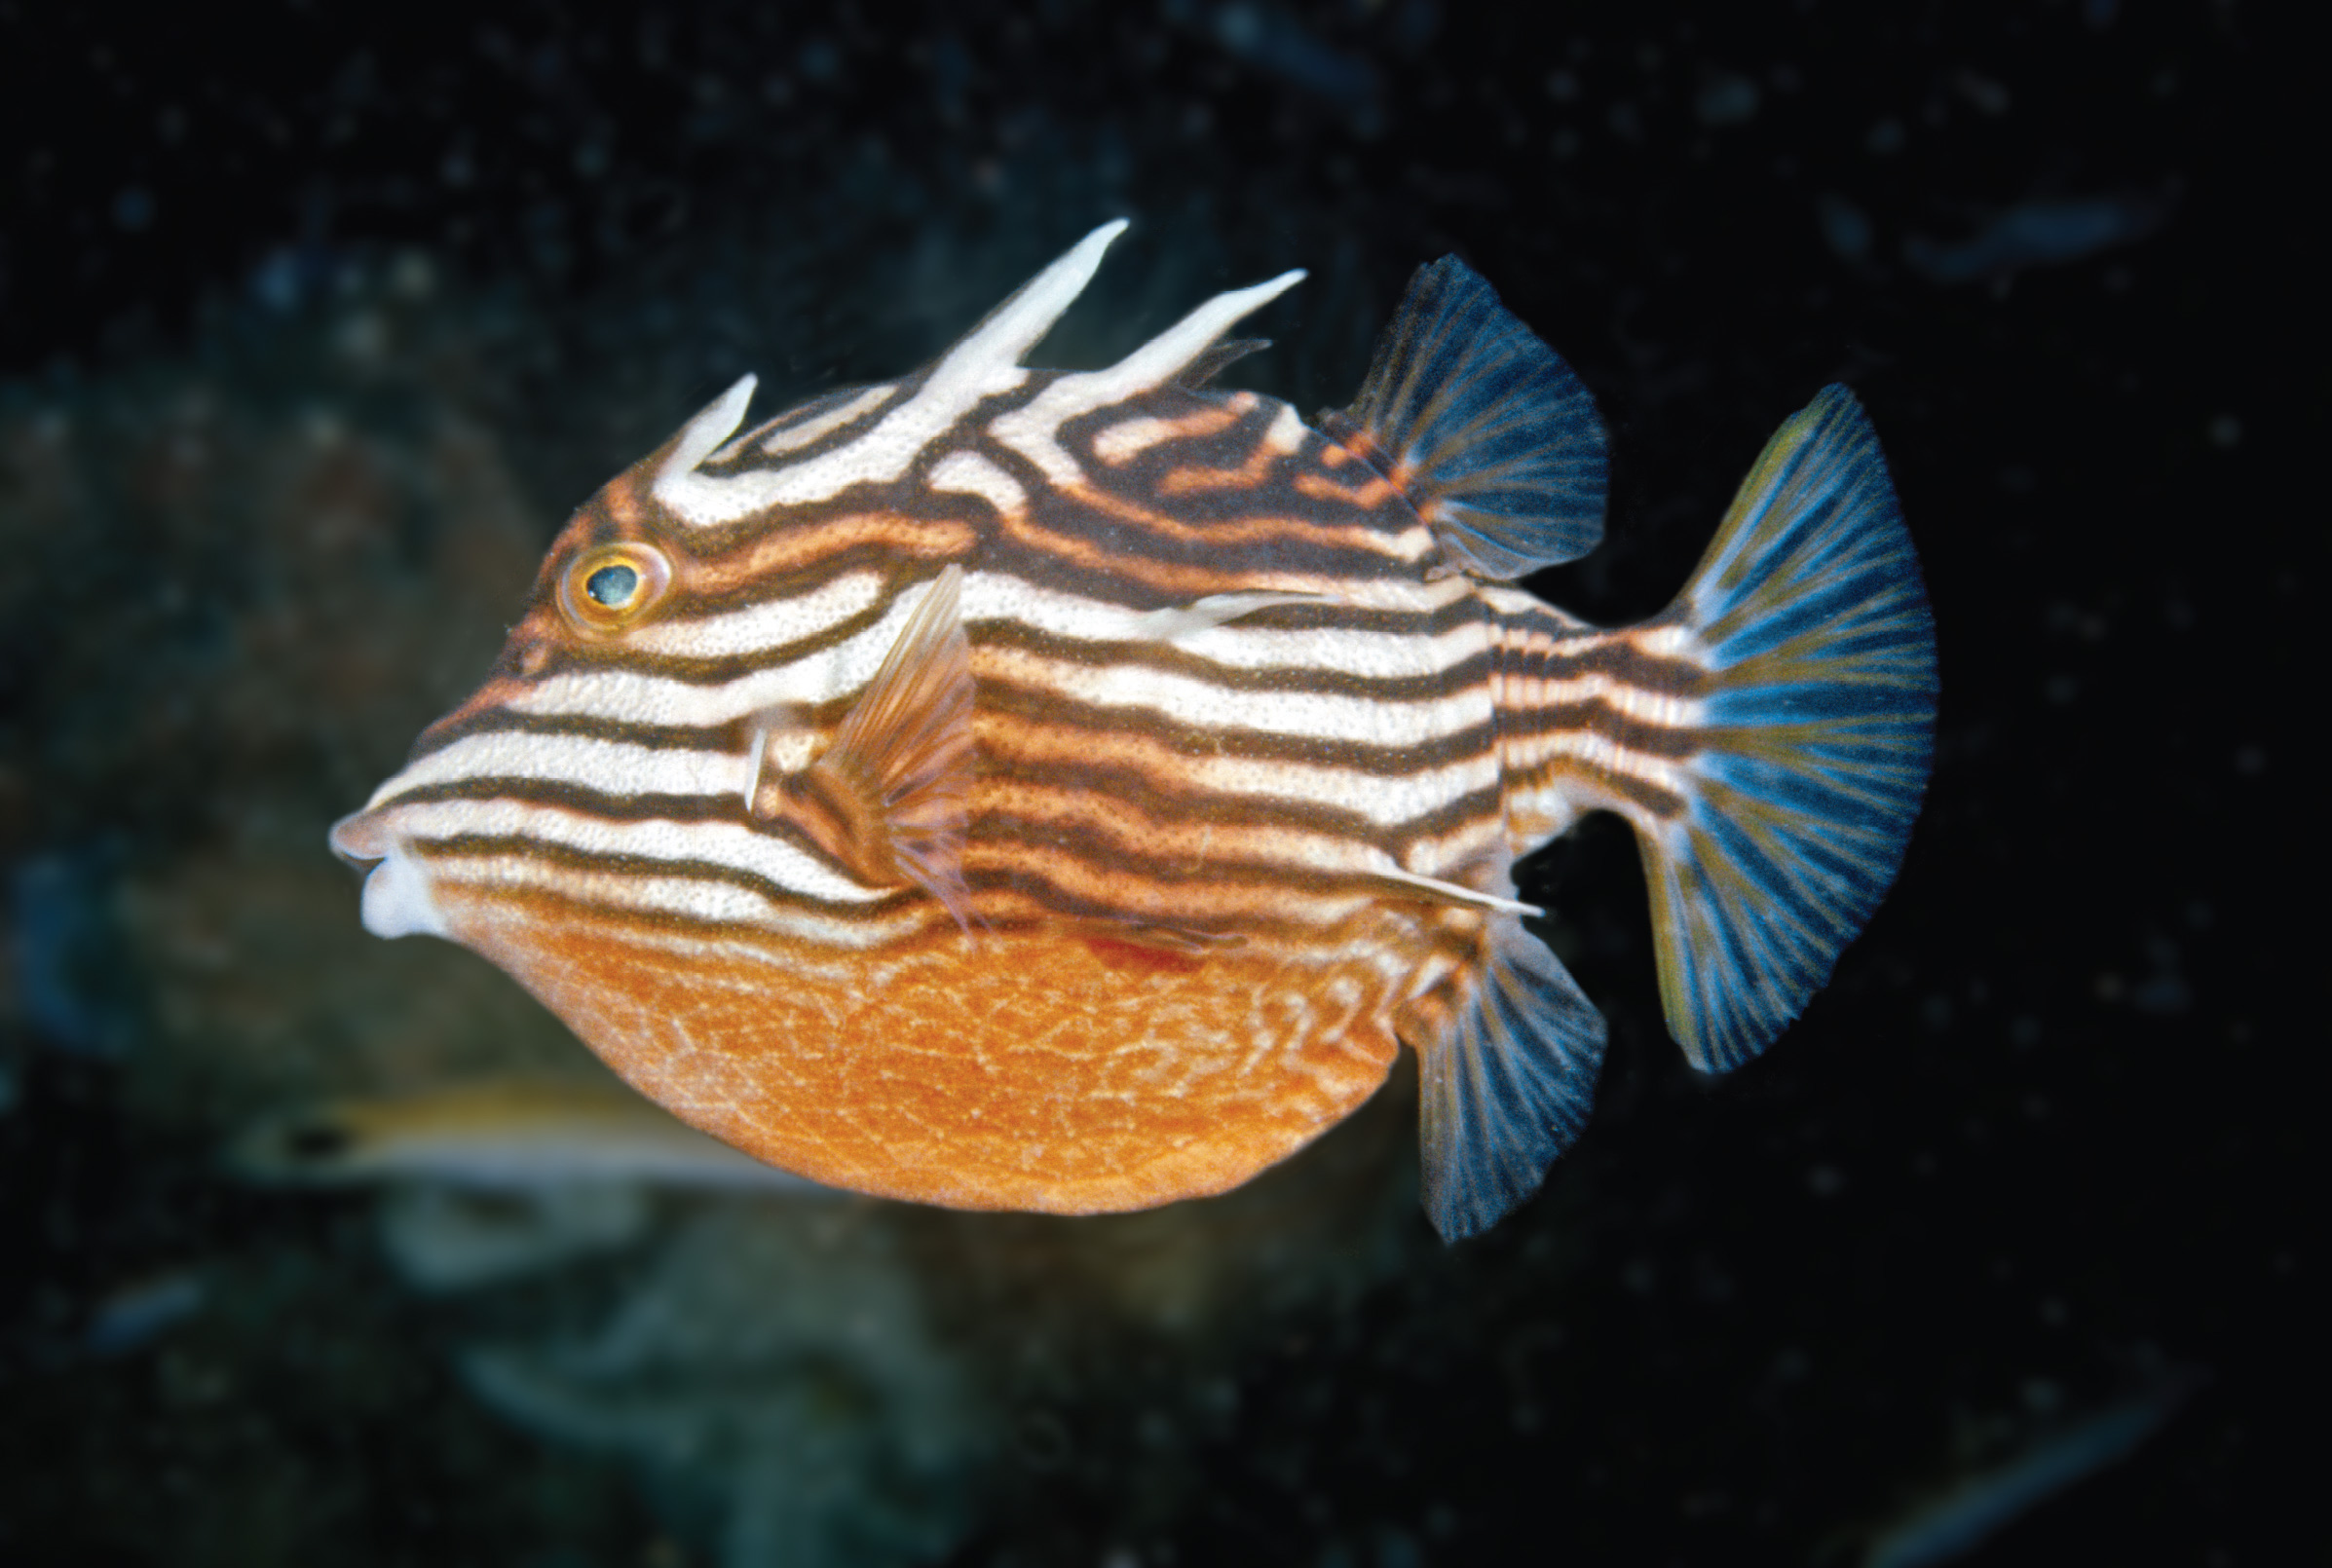 Australia Aracana Ornate Box fish